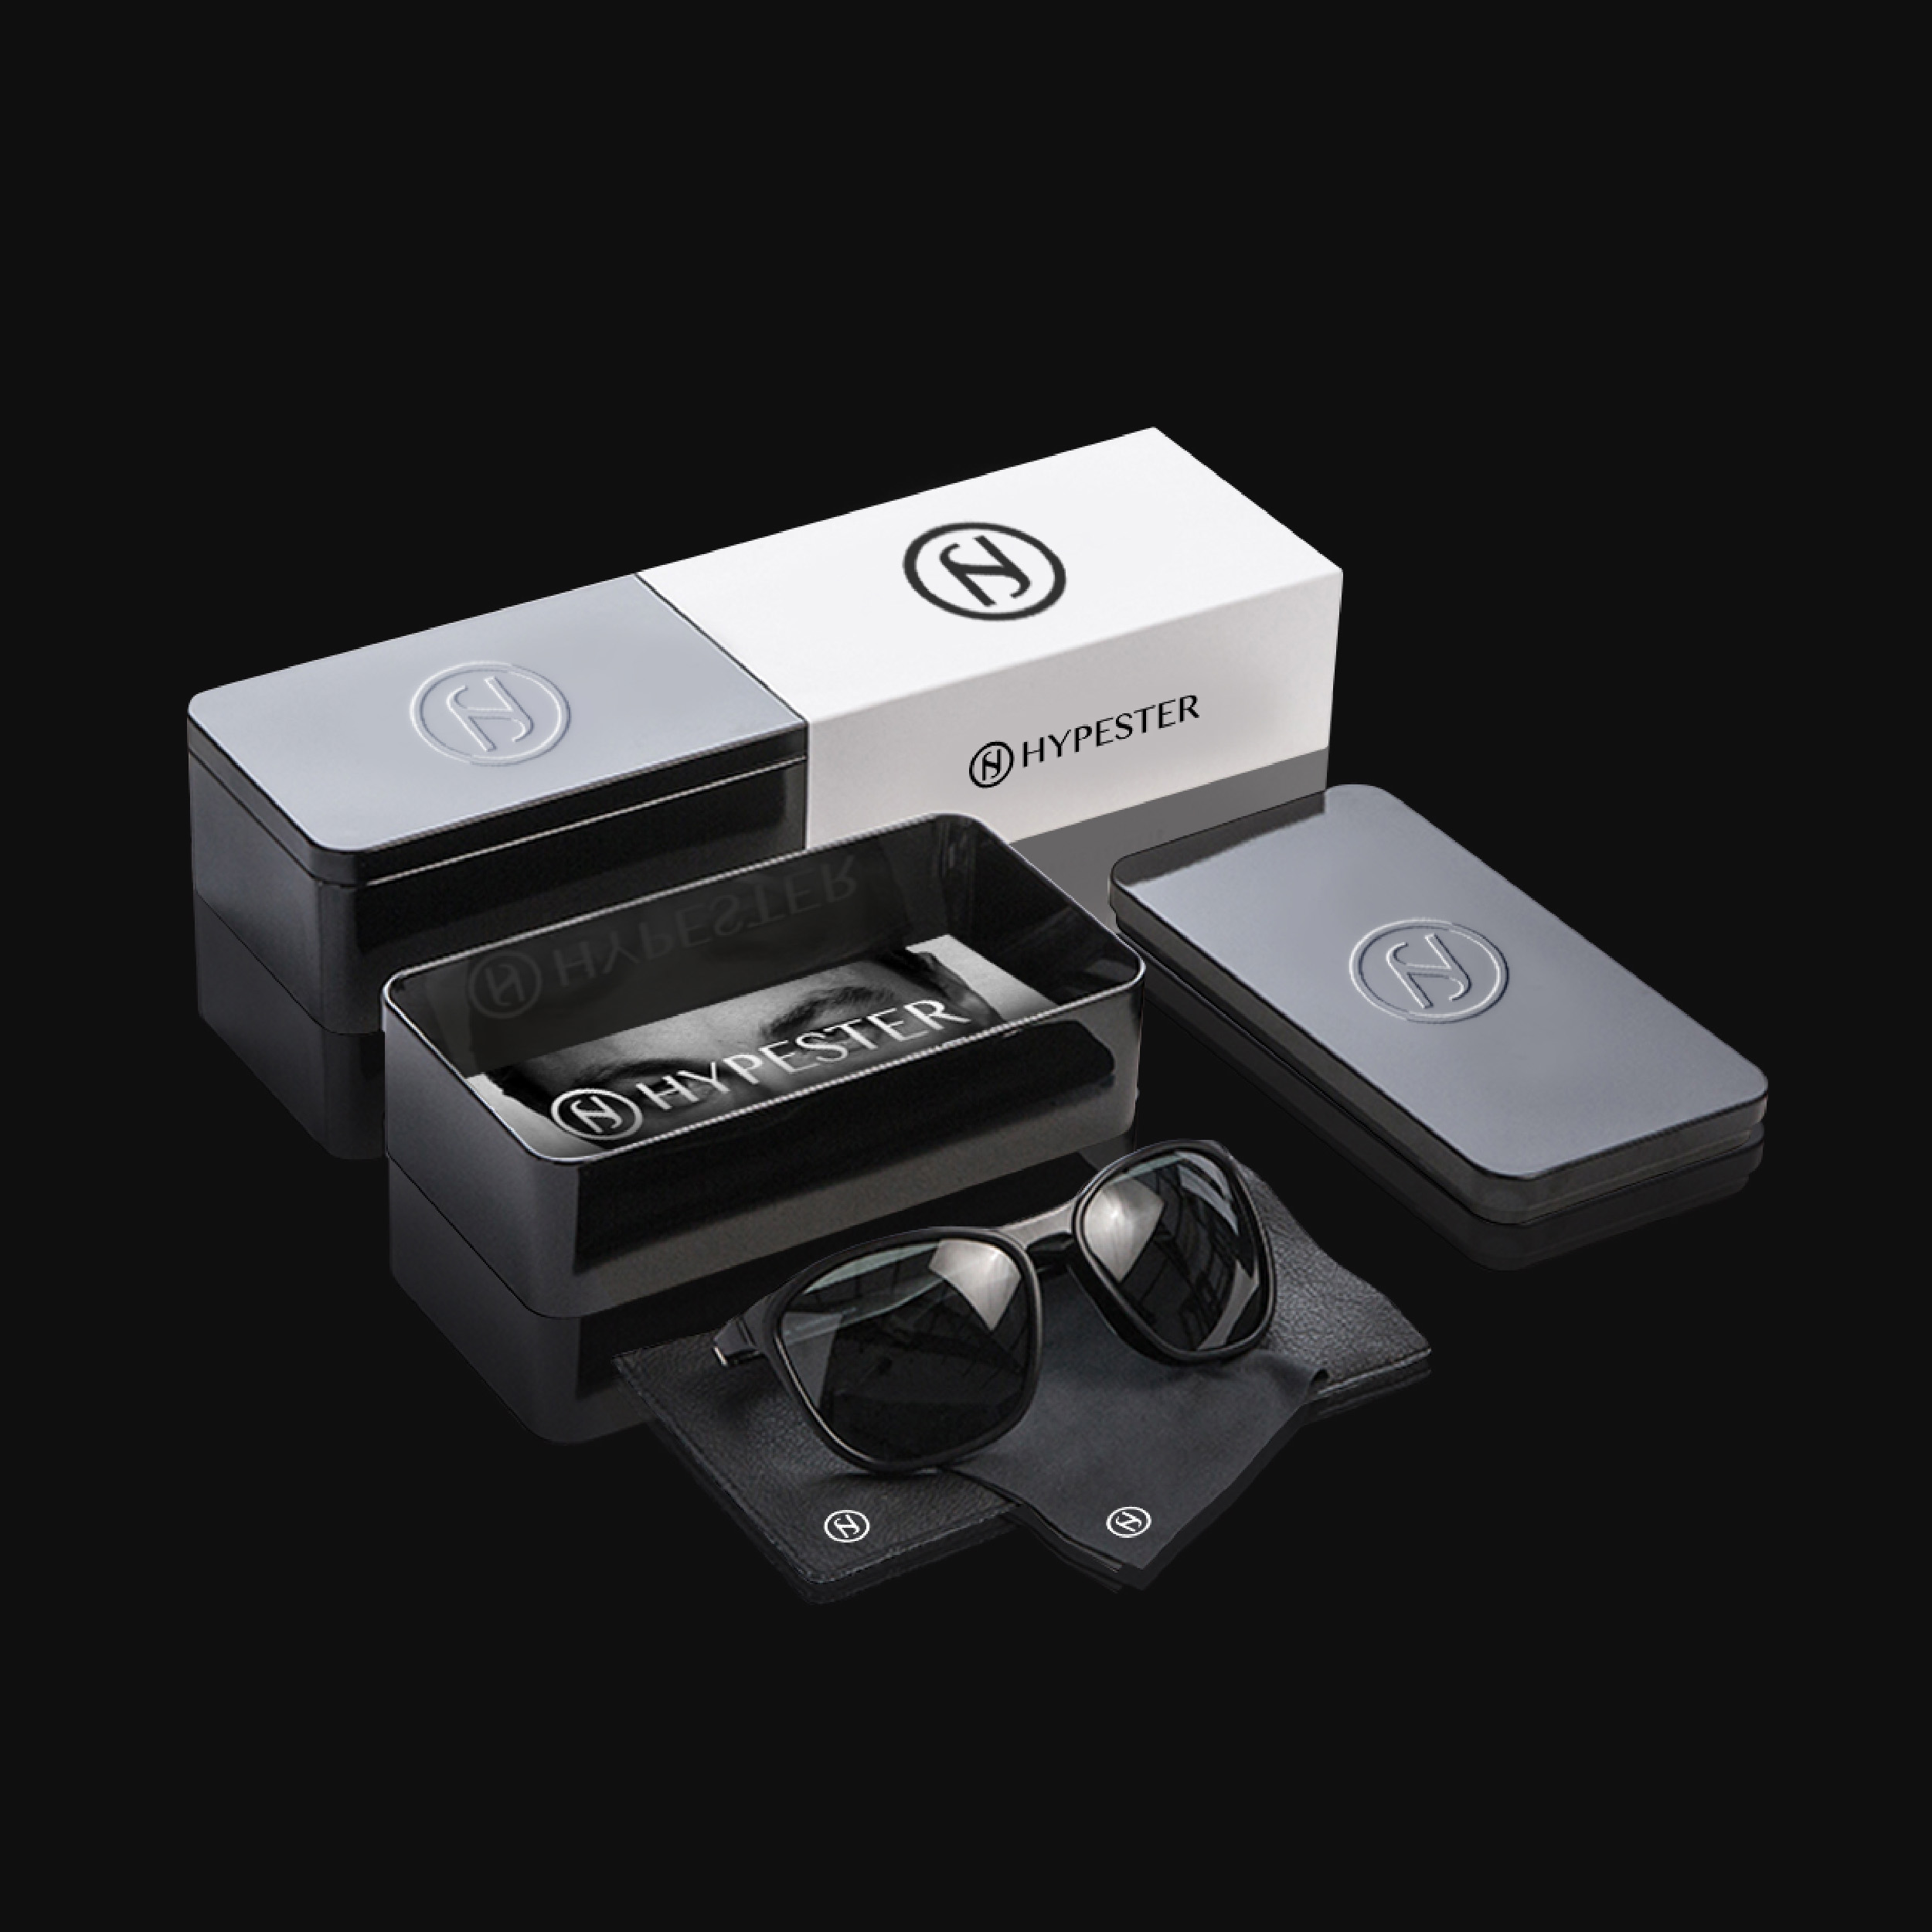 Hypester product and packaging design showing sunglasses and metal container